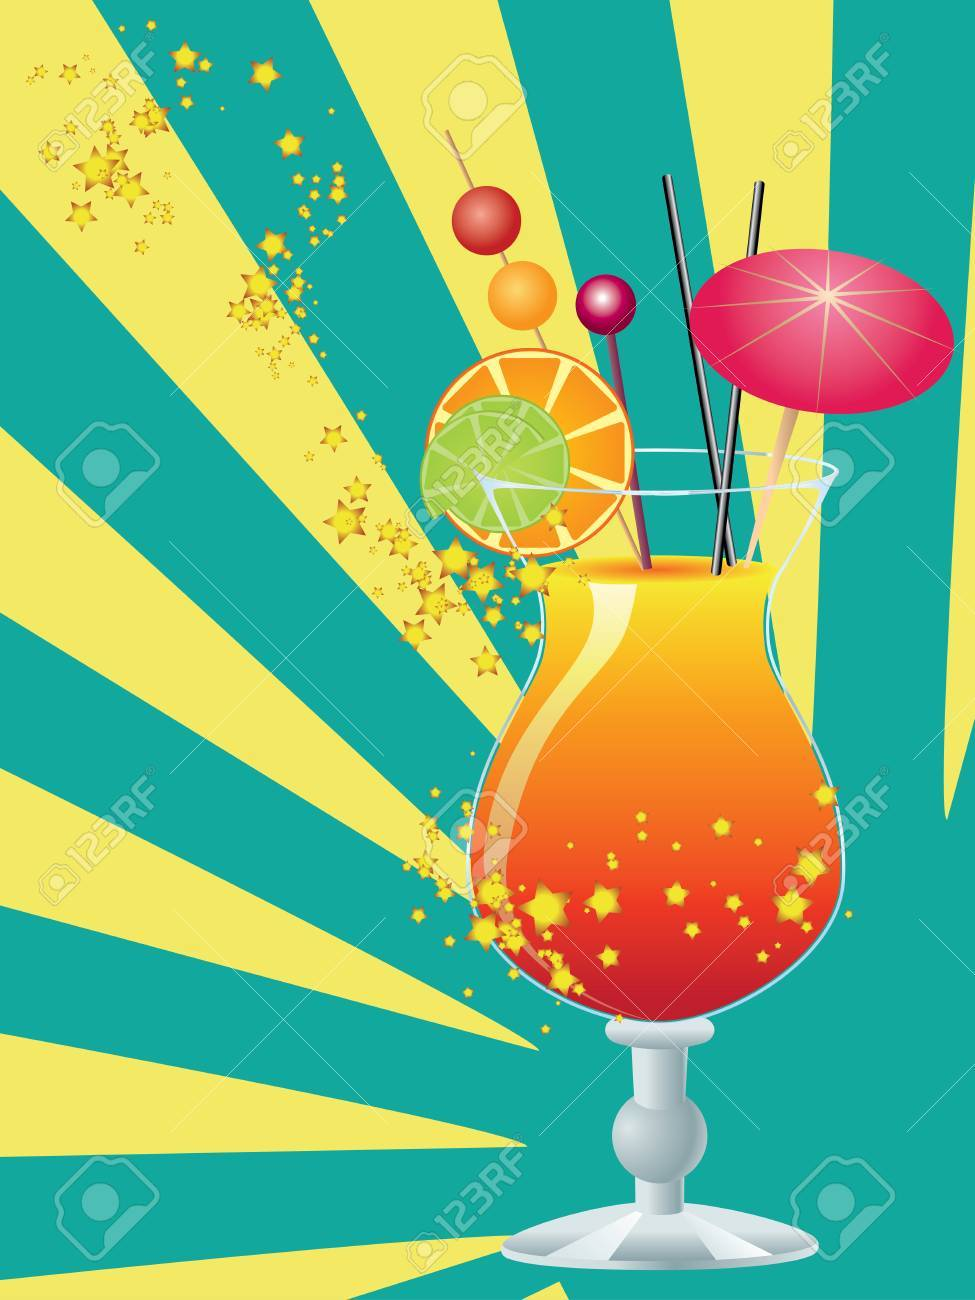 Orange cocktail garnished with a small umbrella, straw and orange slice. Stock Vector - 22693102